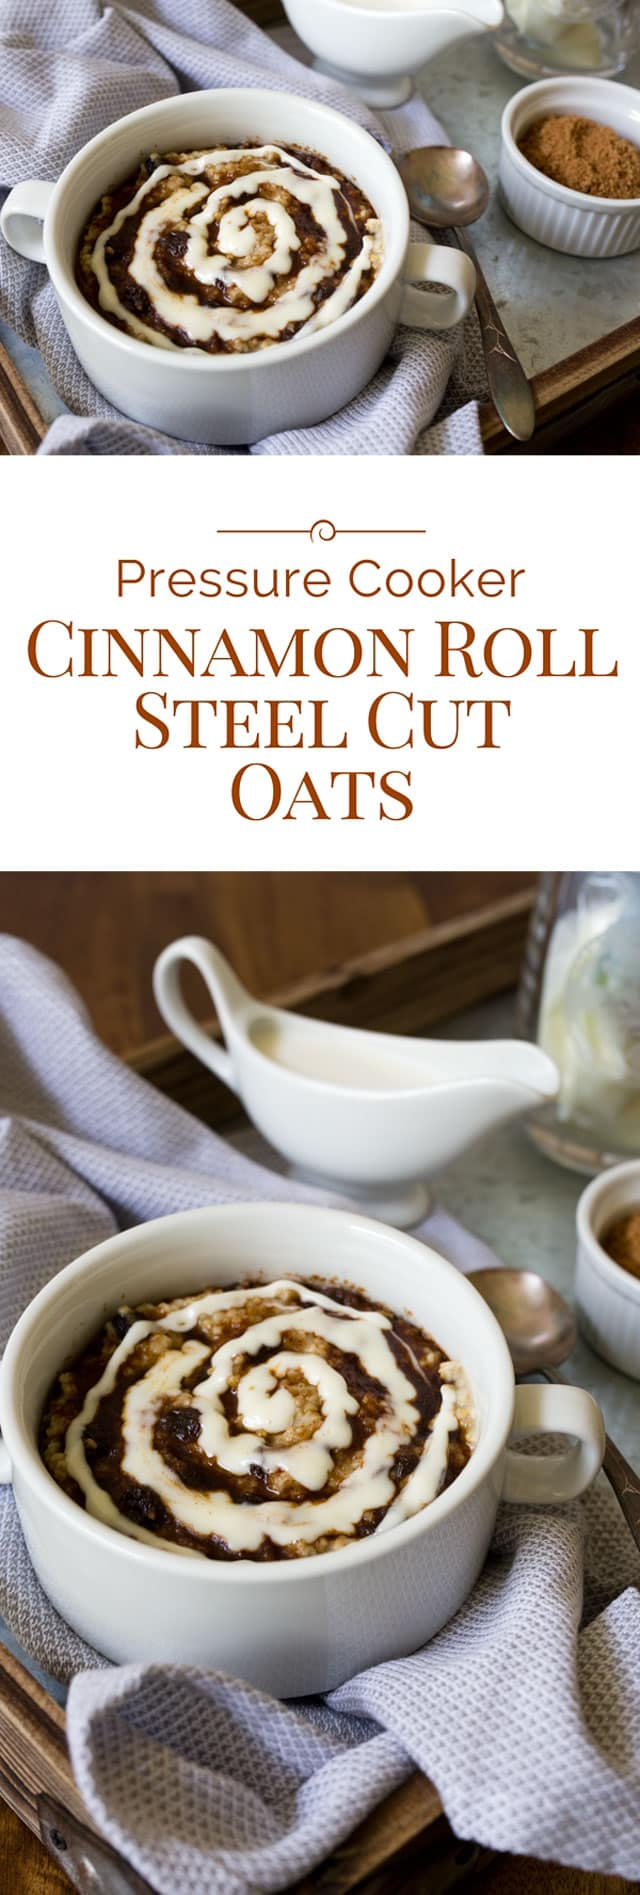 Cinnamon roll steel cut oats is a delicious and sweet baked oatmeal topped with brown sugar cinnamon and a swirl of cream cheese icing, made in an Instant Pot electric pressure cooker. Why have plain boring oatmeal when you can make this baked cinnamon roll steel cut oatmeal recipe? #instantpot #pressurecooker #pressurecooking #breakfast #oatmeal via @PressureCook2da